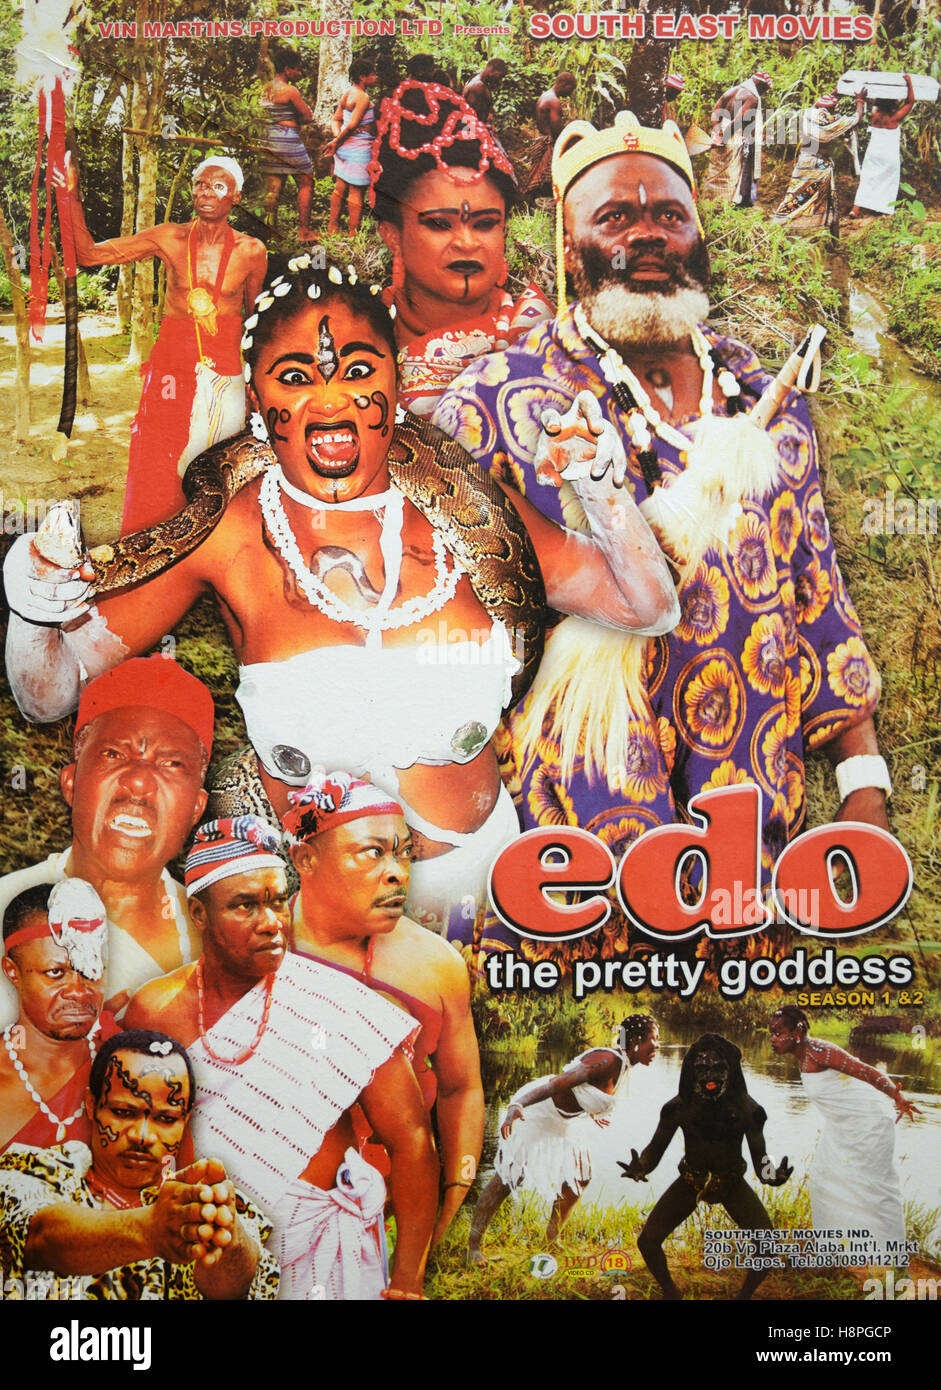 Nigerian Nollywood Film Movie Poster Stock Photos & Nigerian